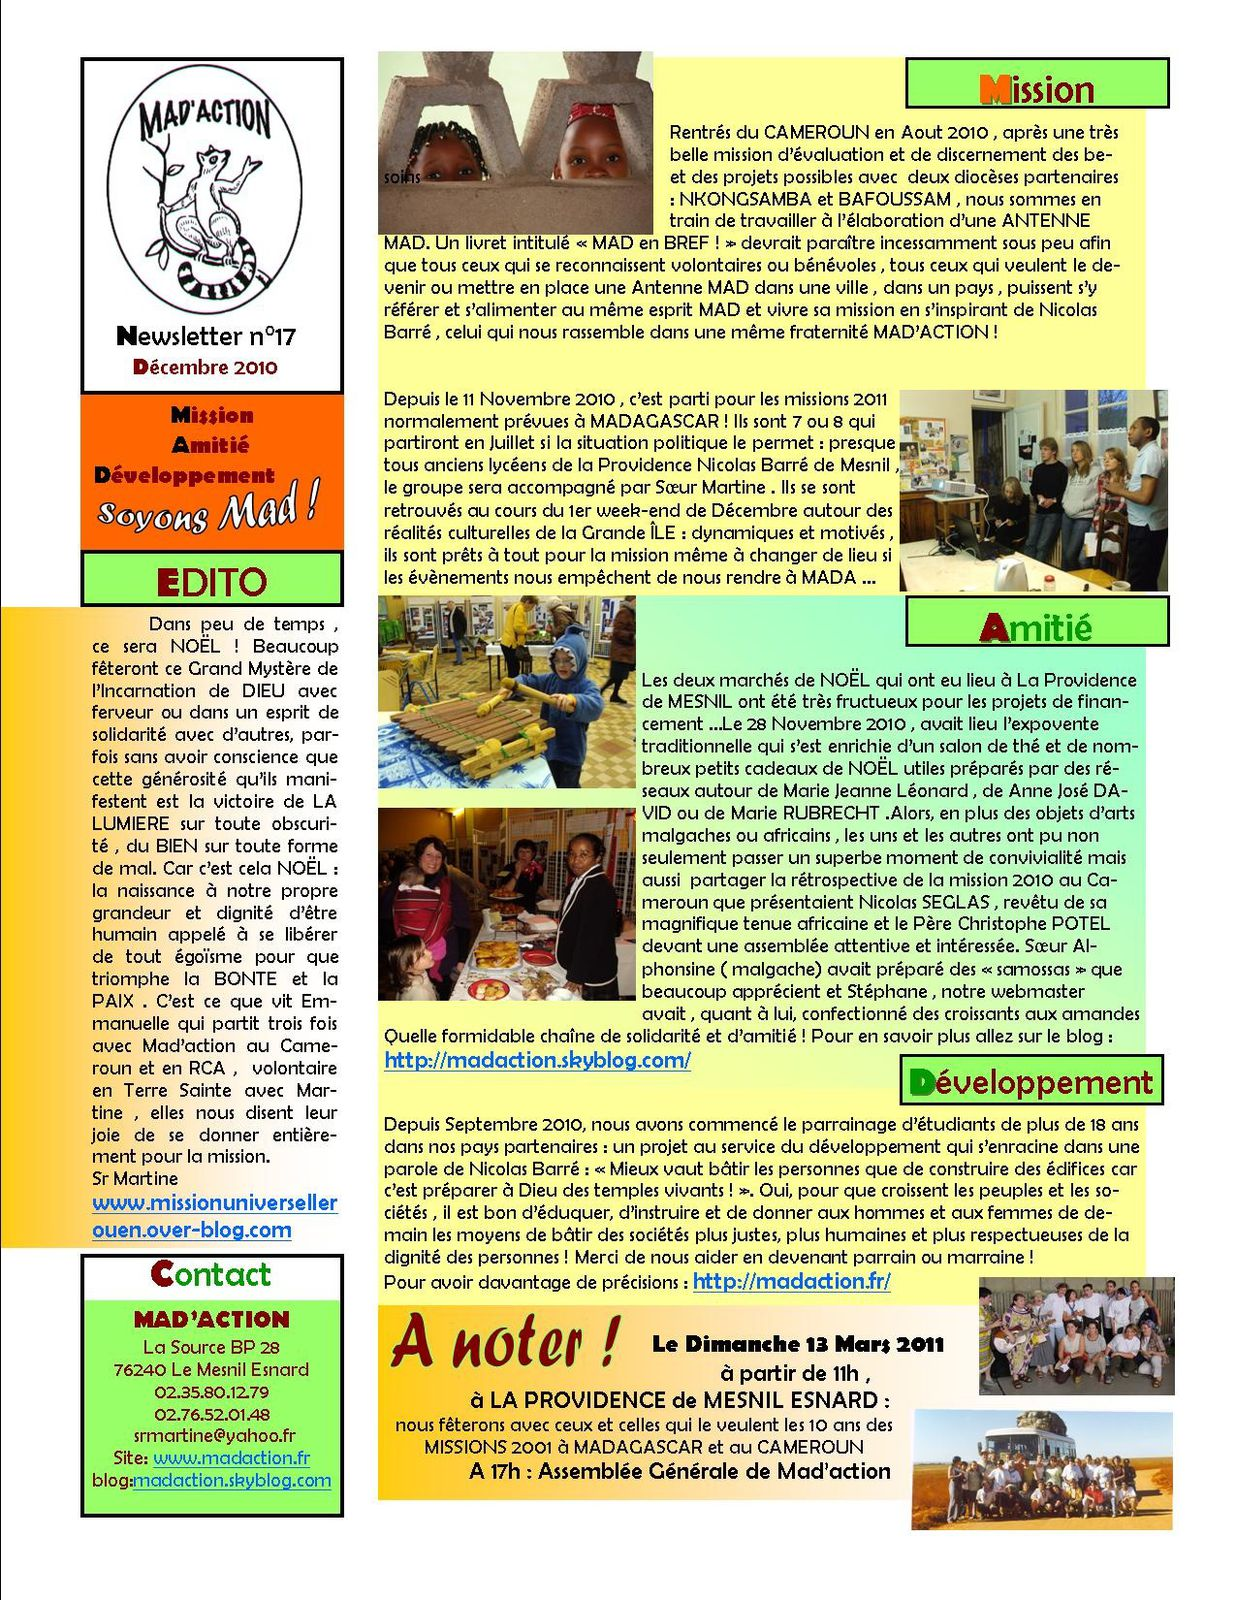 newsletter MAD n°17 déc 2010